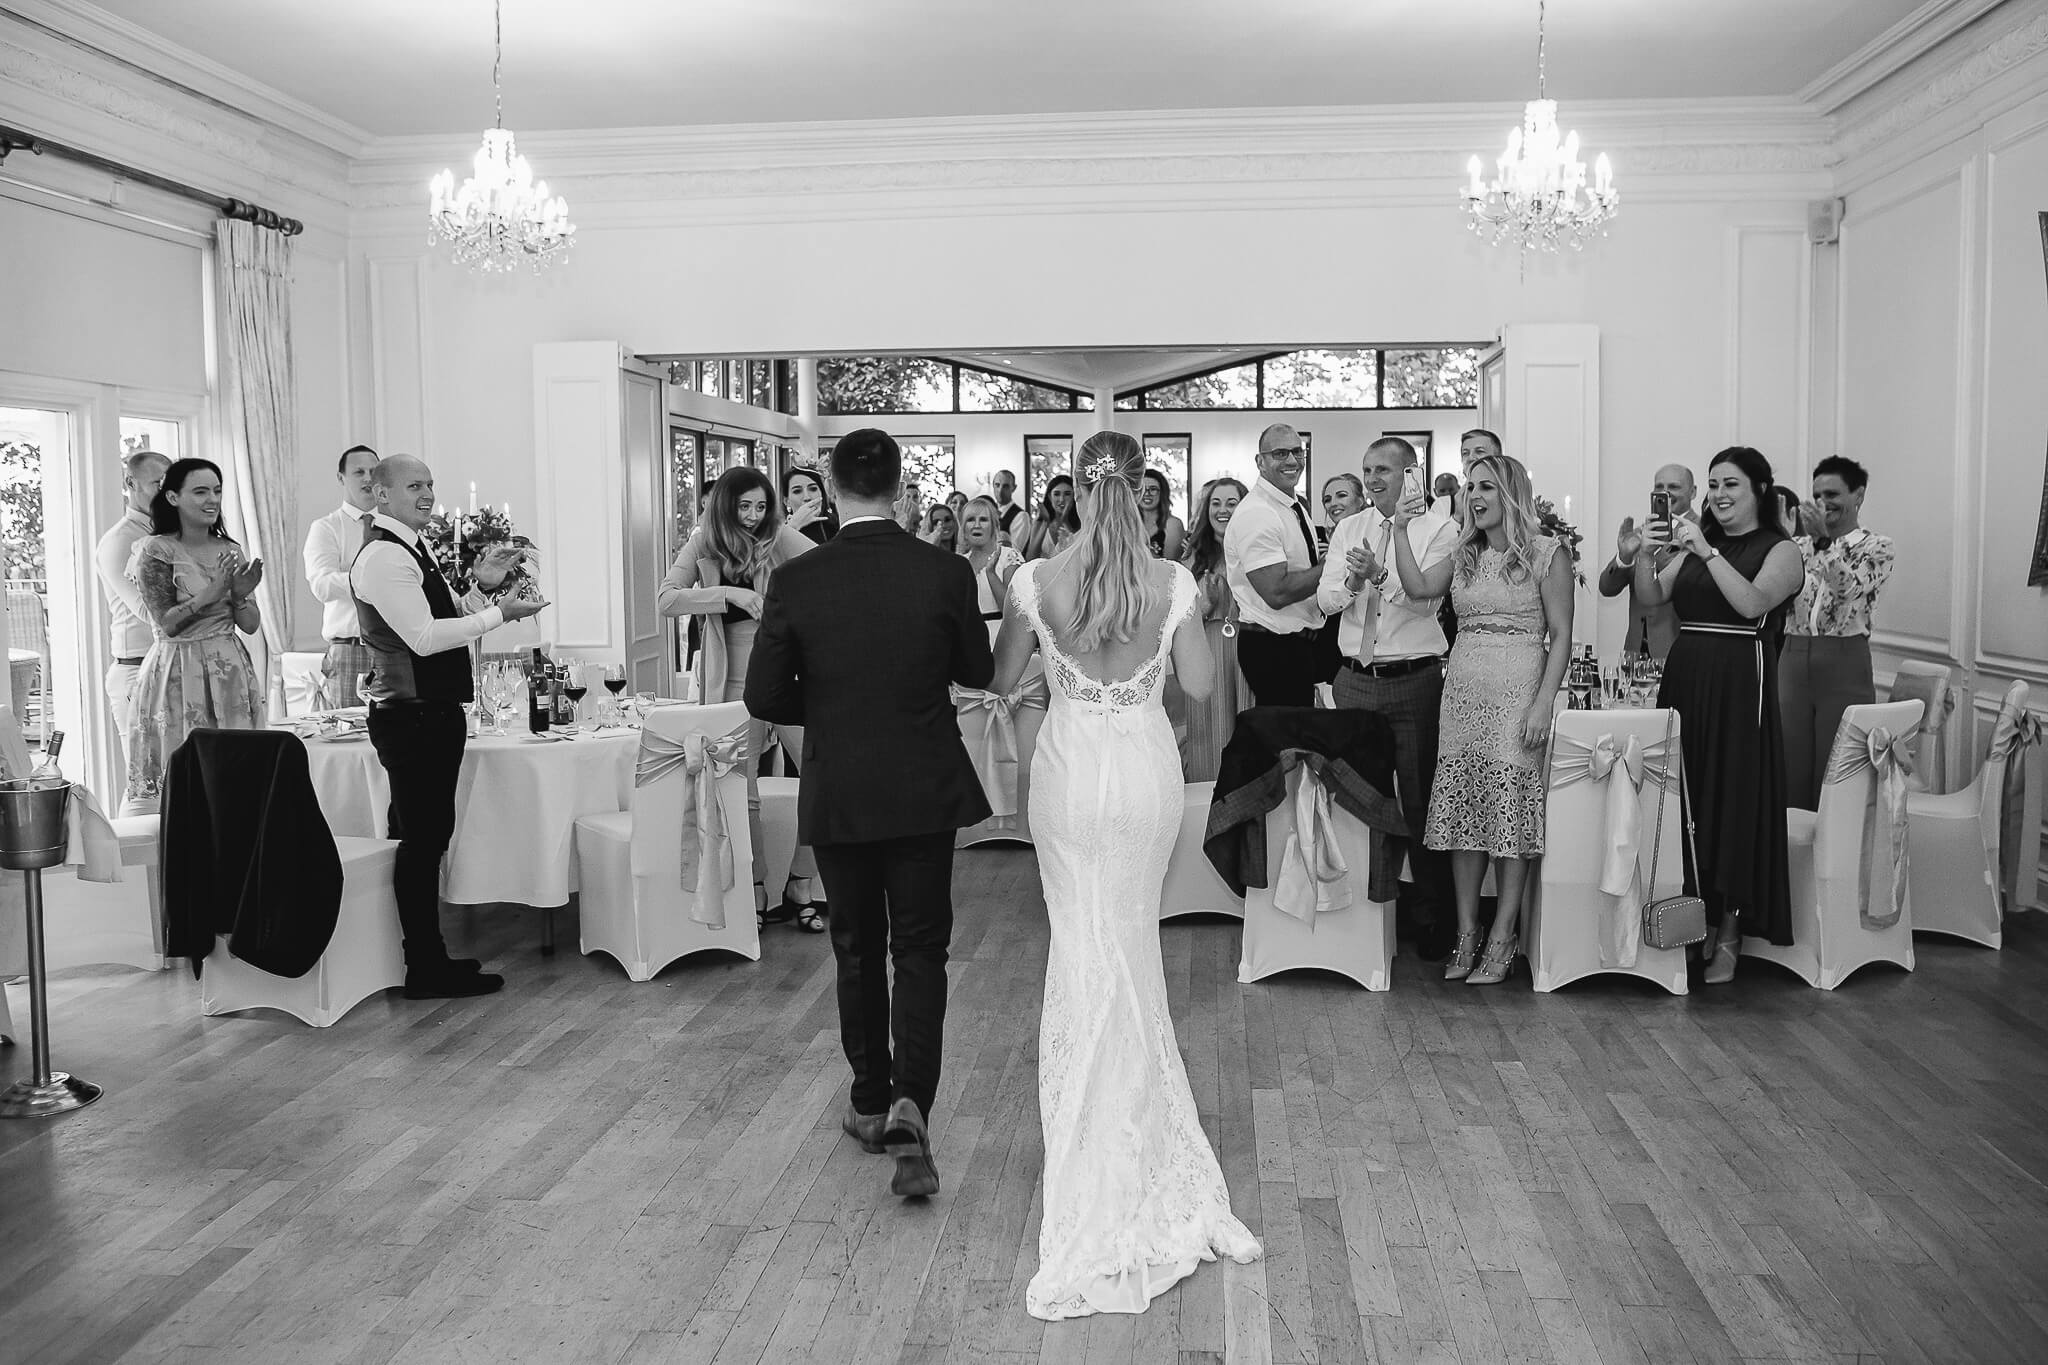 best-wedding-photographers-uk-europe-stanbury-photography-120